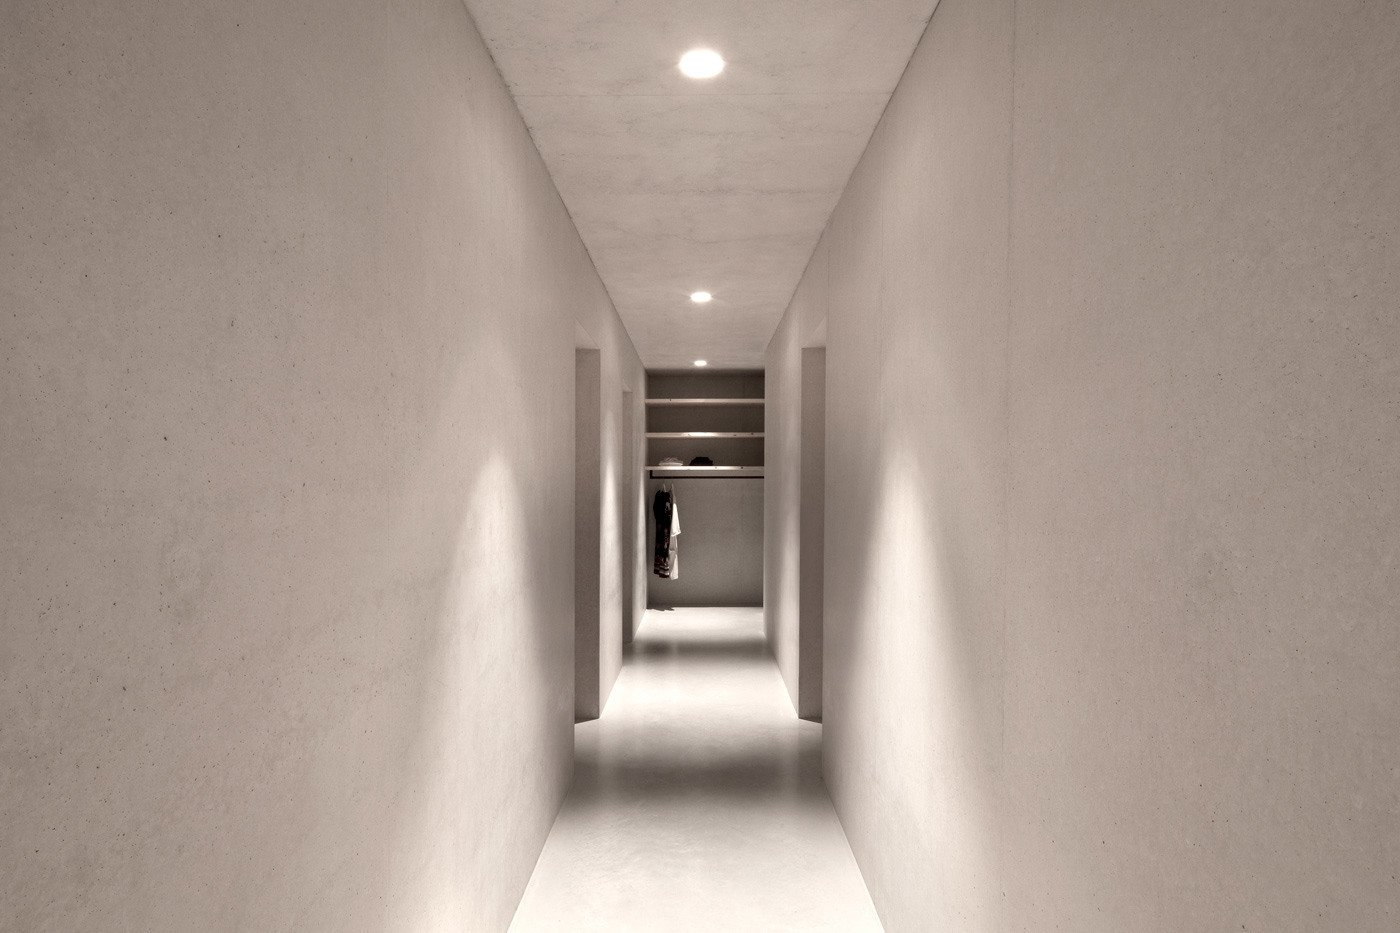 Hallway and Concrete Floor The minimal interior lends a modern feel to the chalet.  Photo 9 of 12 in Find Sanctuary in This Chalet in the Italian Alps